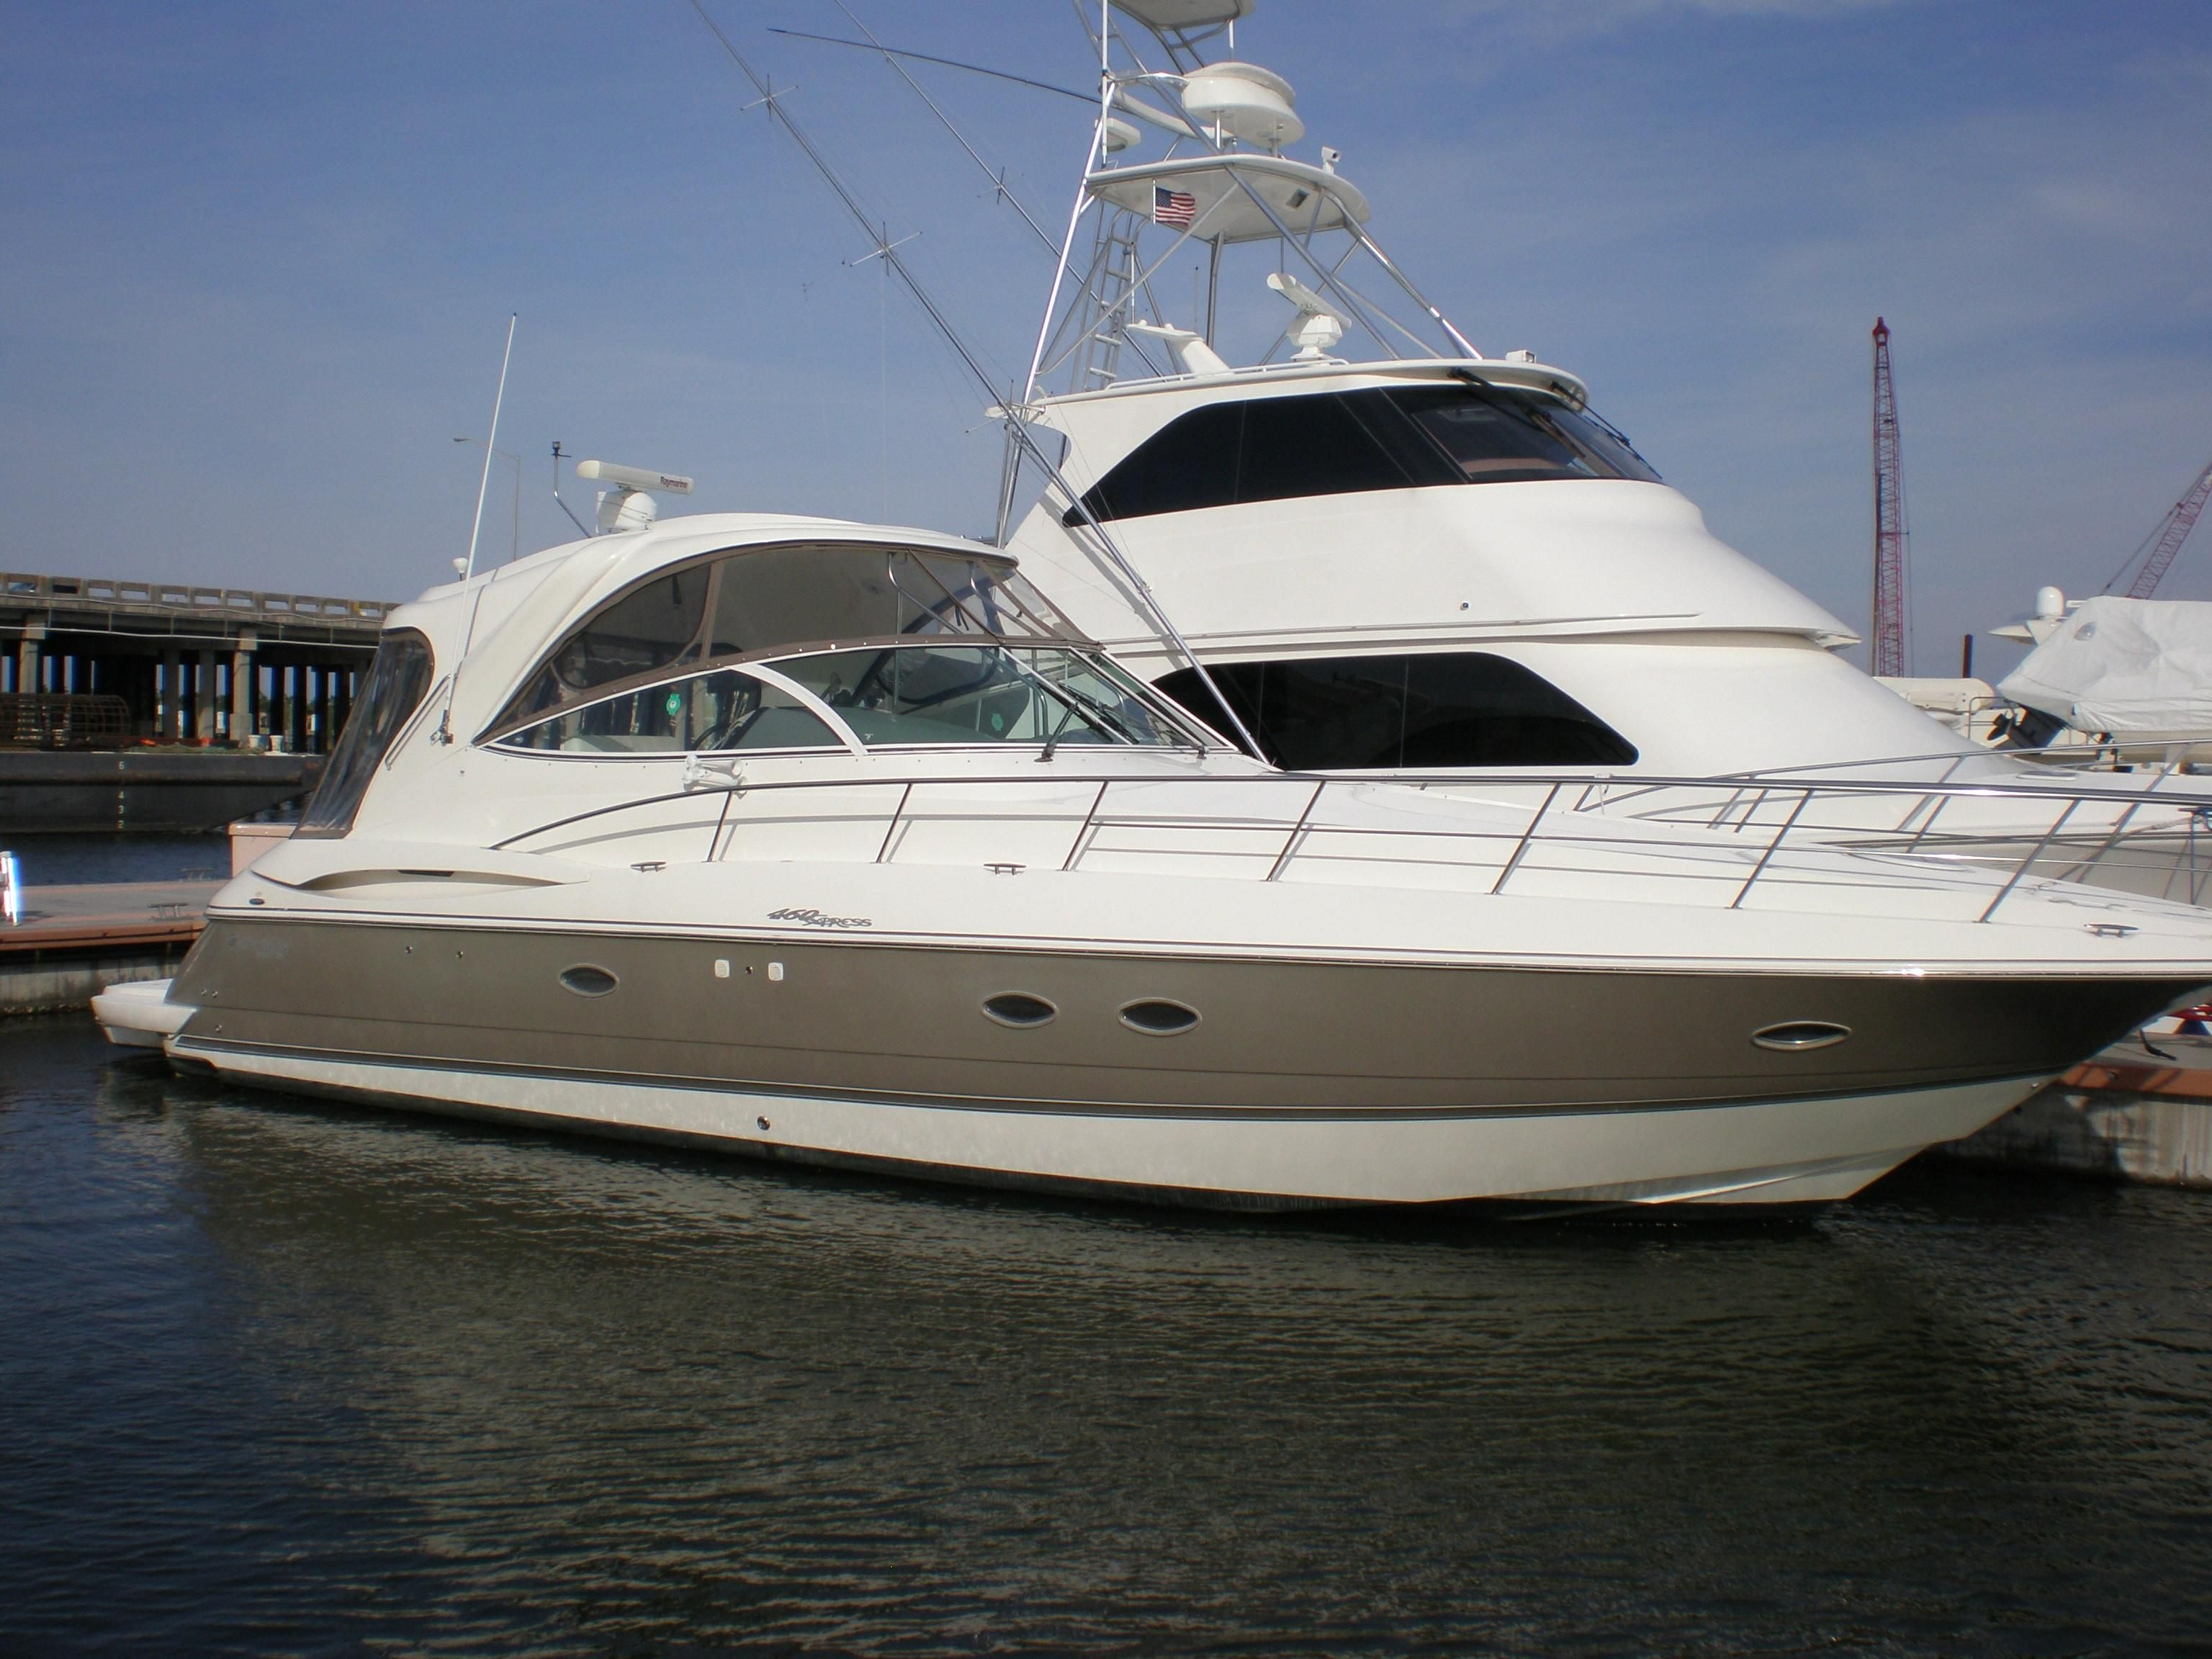 2006 Cruisers Yachts 460 Express Power Boat For Sale - www.yachtworld.com